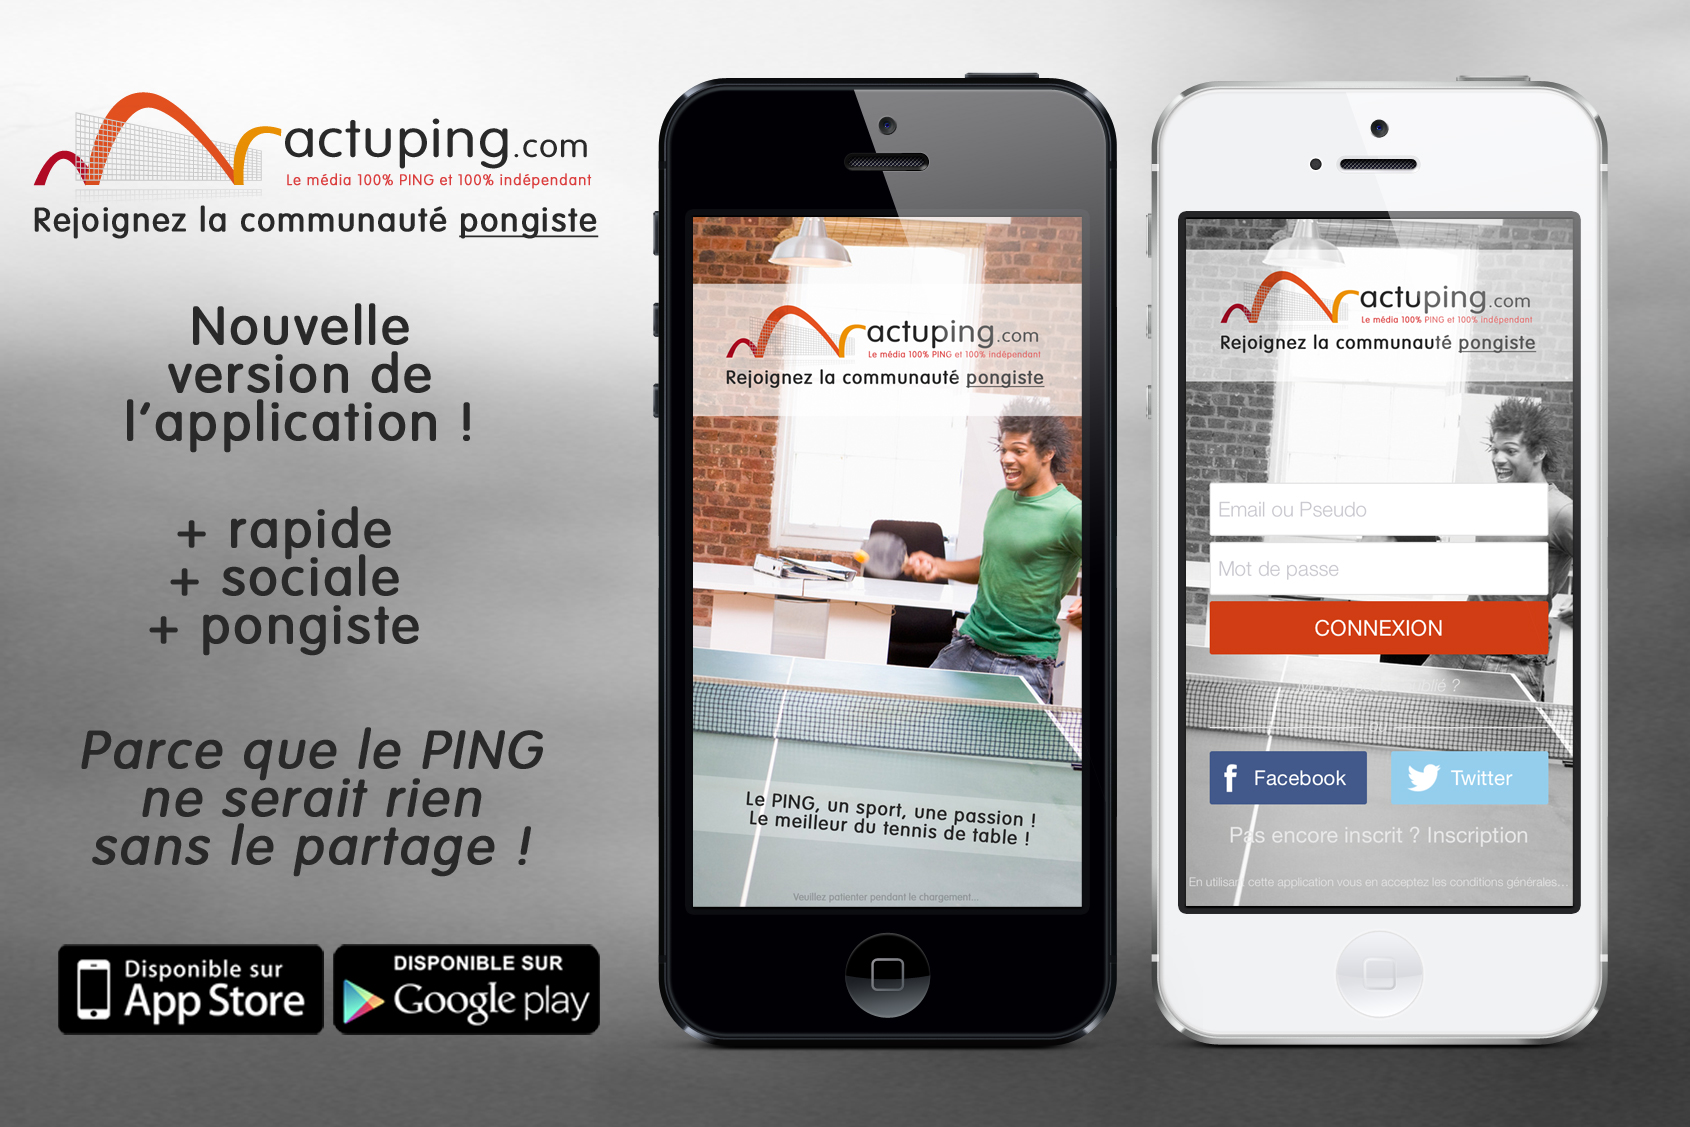 Nouvelle version de l'application Actuping